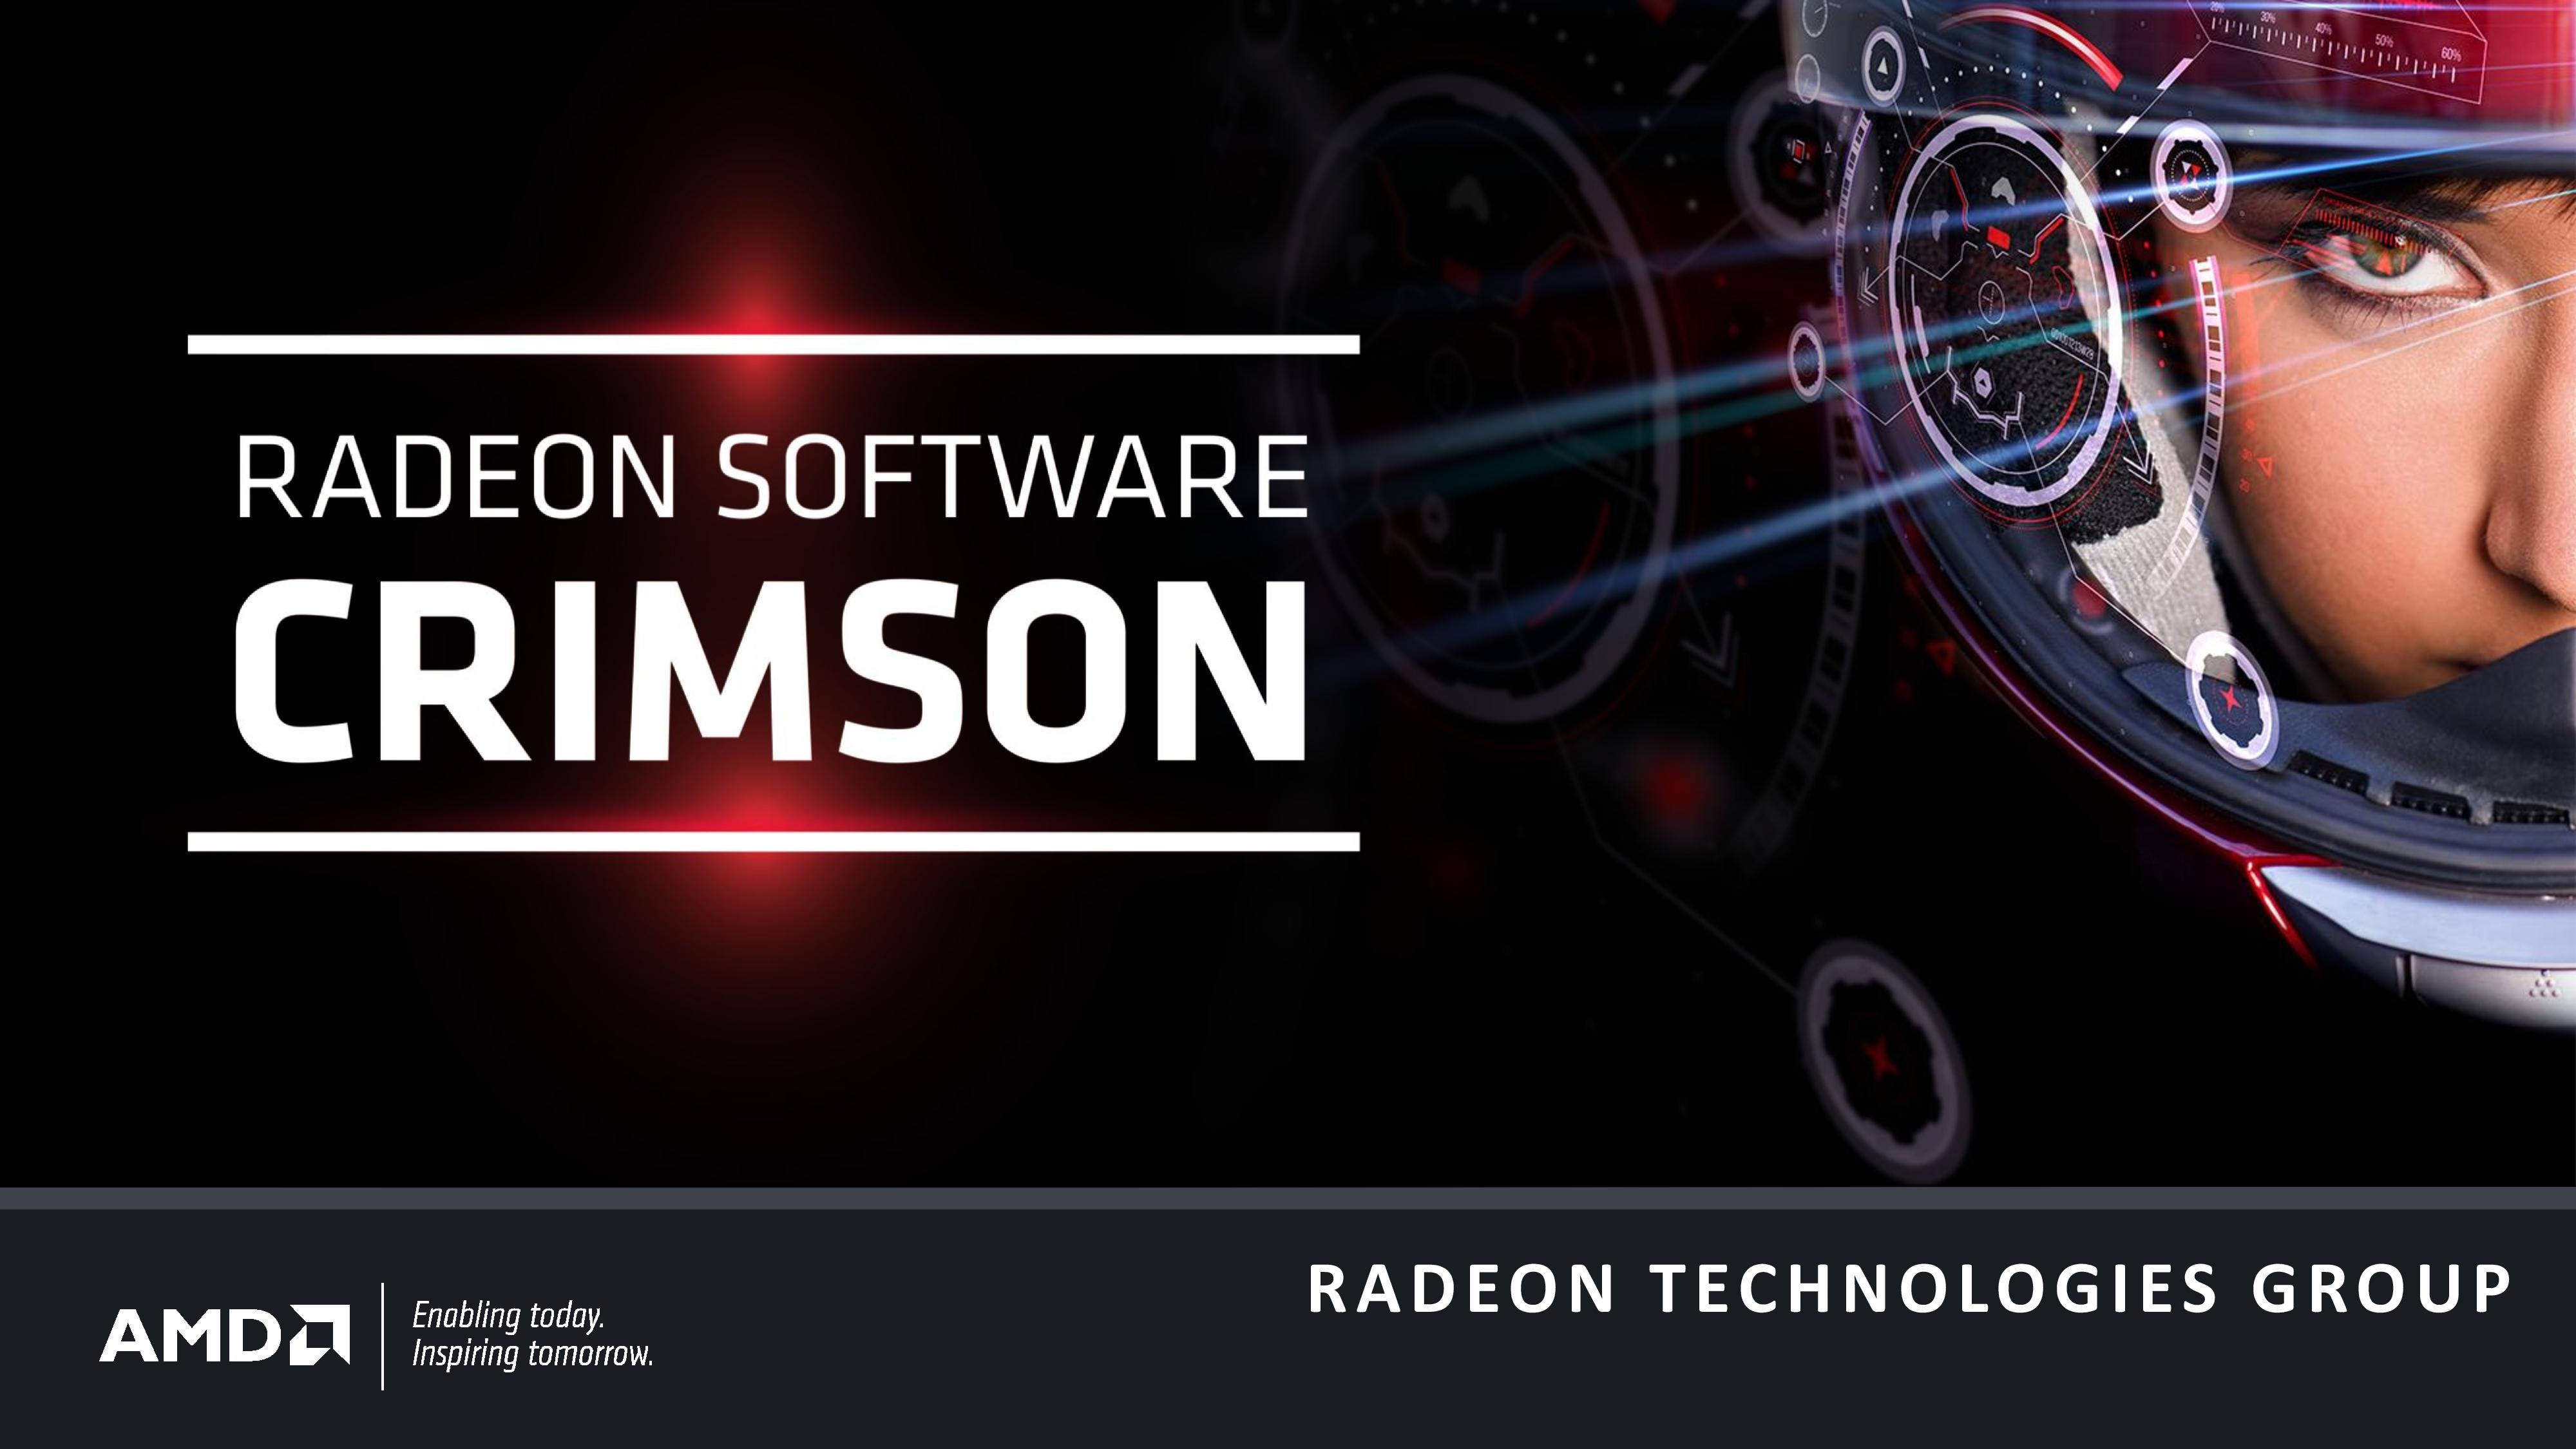 Amd Release Crimson Edition 16 3 Drivers With Hitman Dx12 Support Fury X Gets 60 And R9 380x Gets 44 Performance Increase In Gears Of War